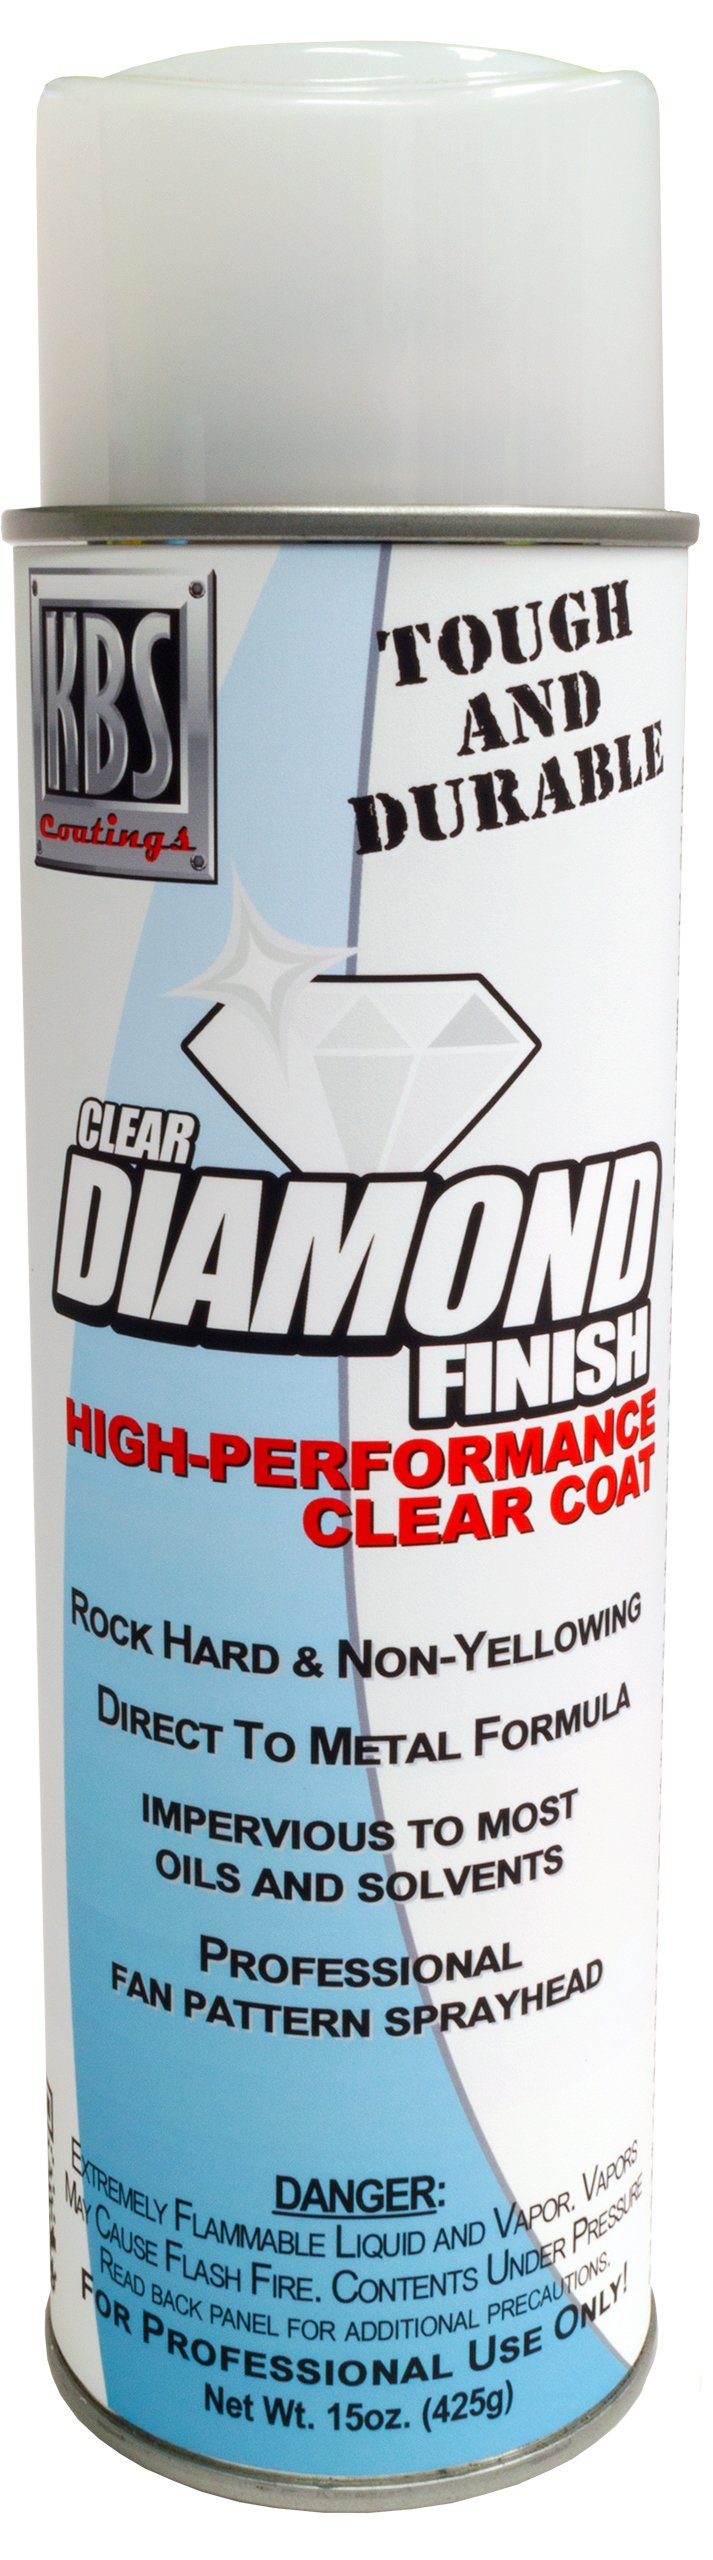 KBS Coatings 8124 Clear Satin Diamond Finish Aerosol, Covers 35 sq ft by KBS Coatings